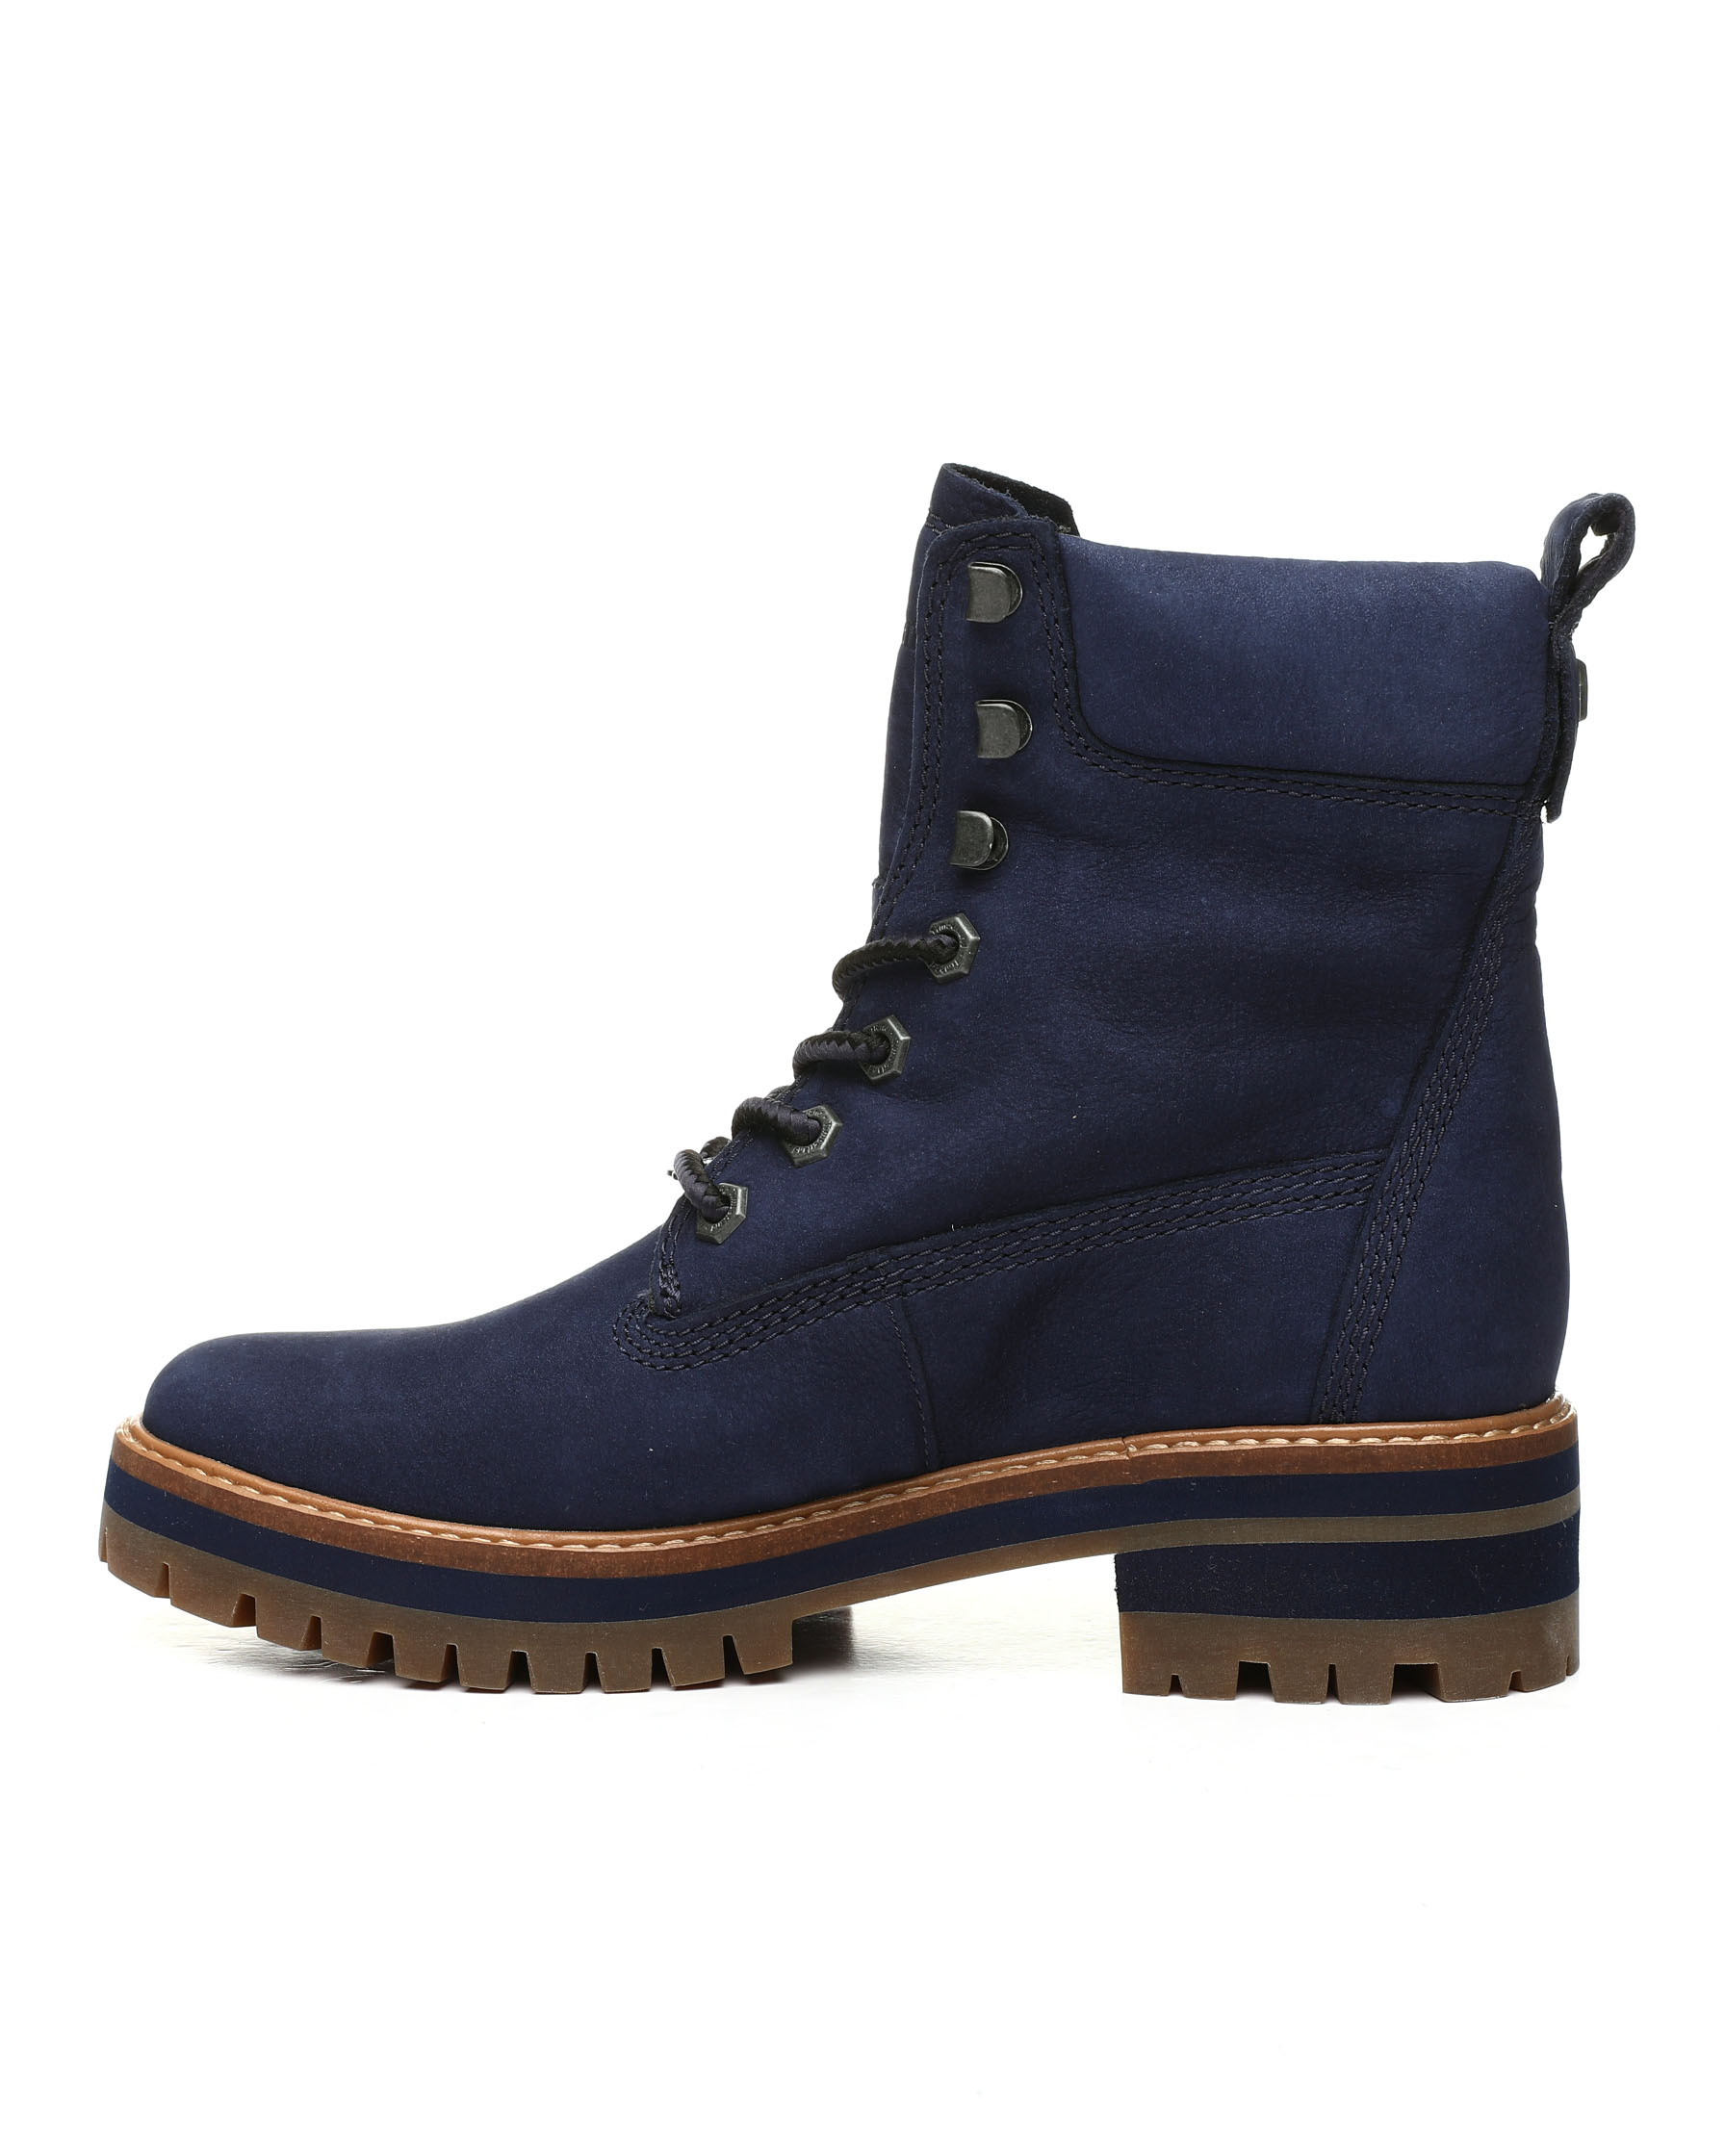 Buy Courmayeur Valley 6 Inch Boots Women's Footwear from